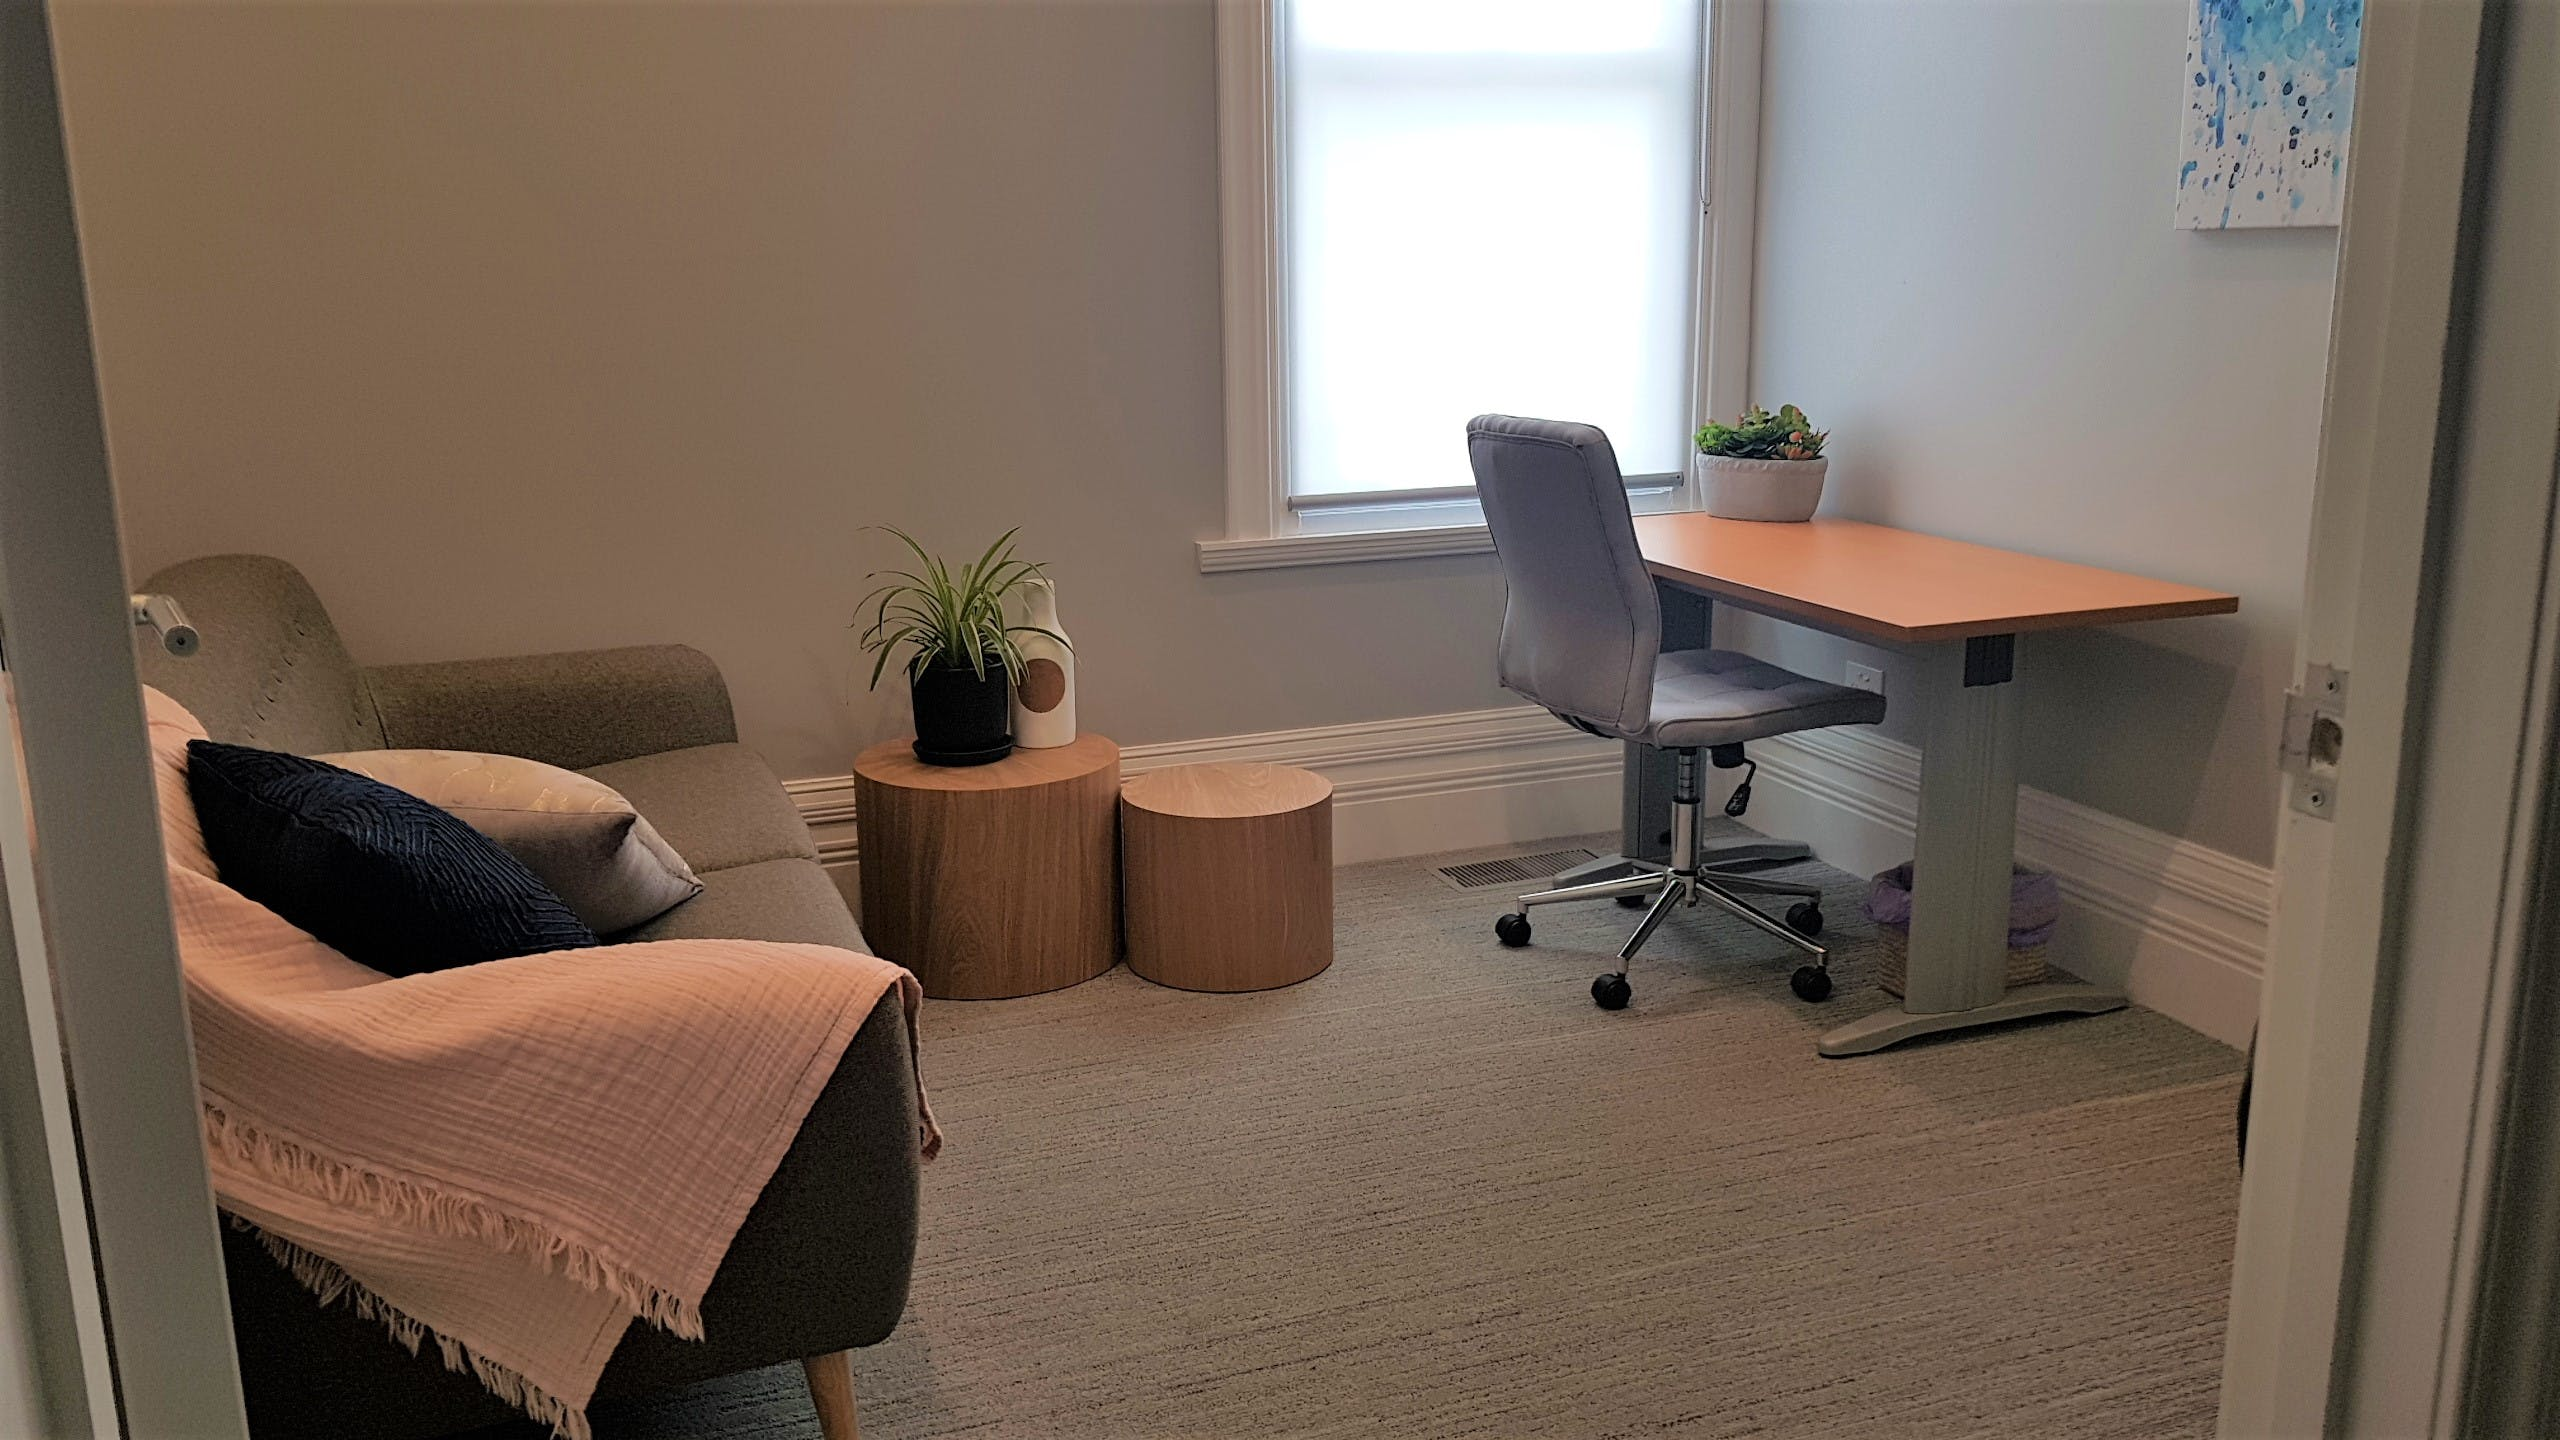 Room 12, private office at The Medical Health Group, image 1